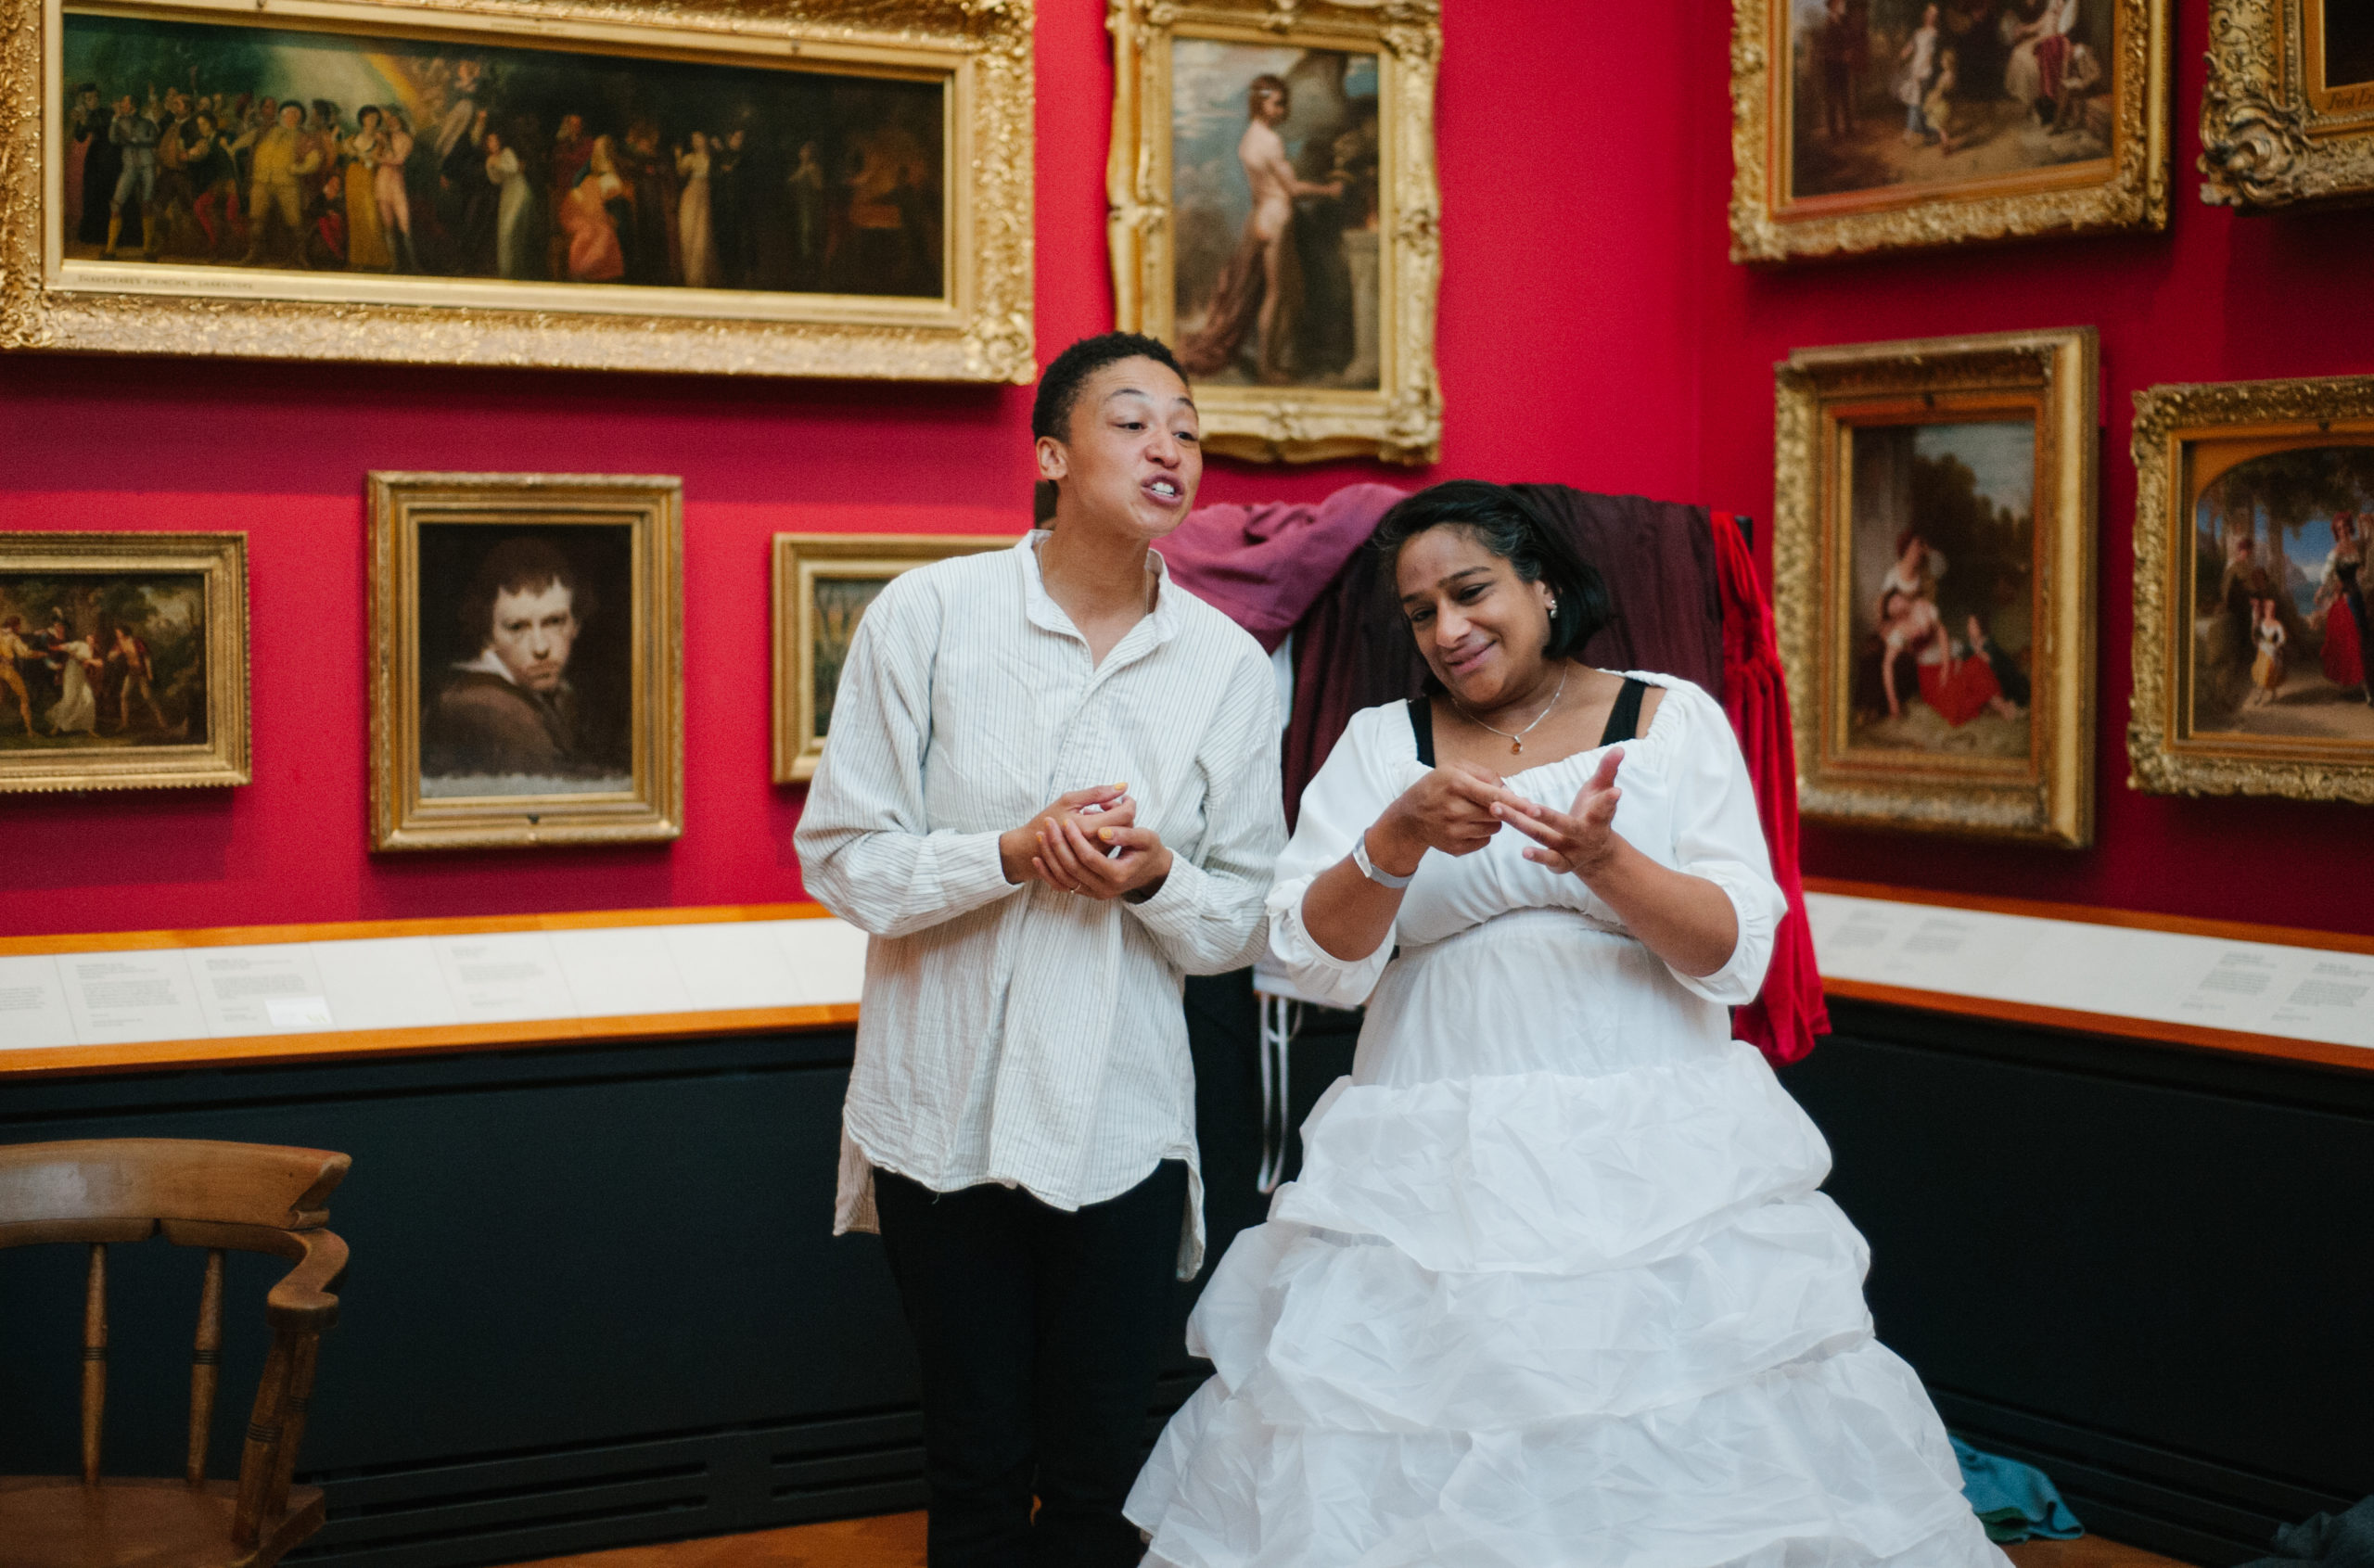 Two actors dressed in historical clothing perform and sign in a gallery at the Victoria and Albert Museum, London.